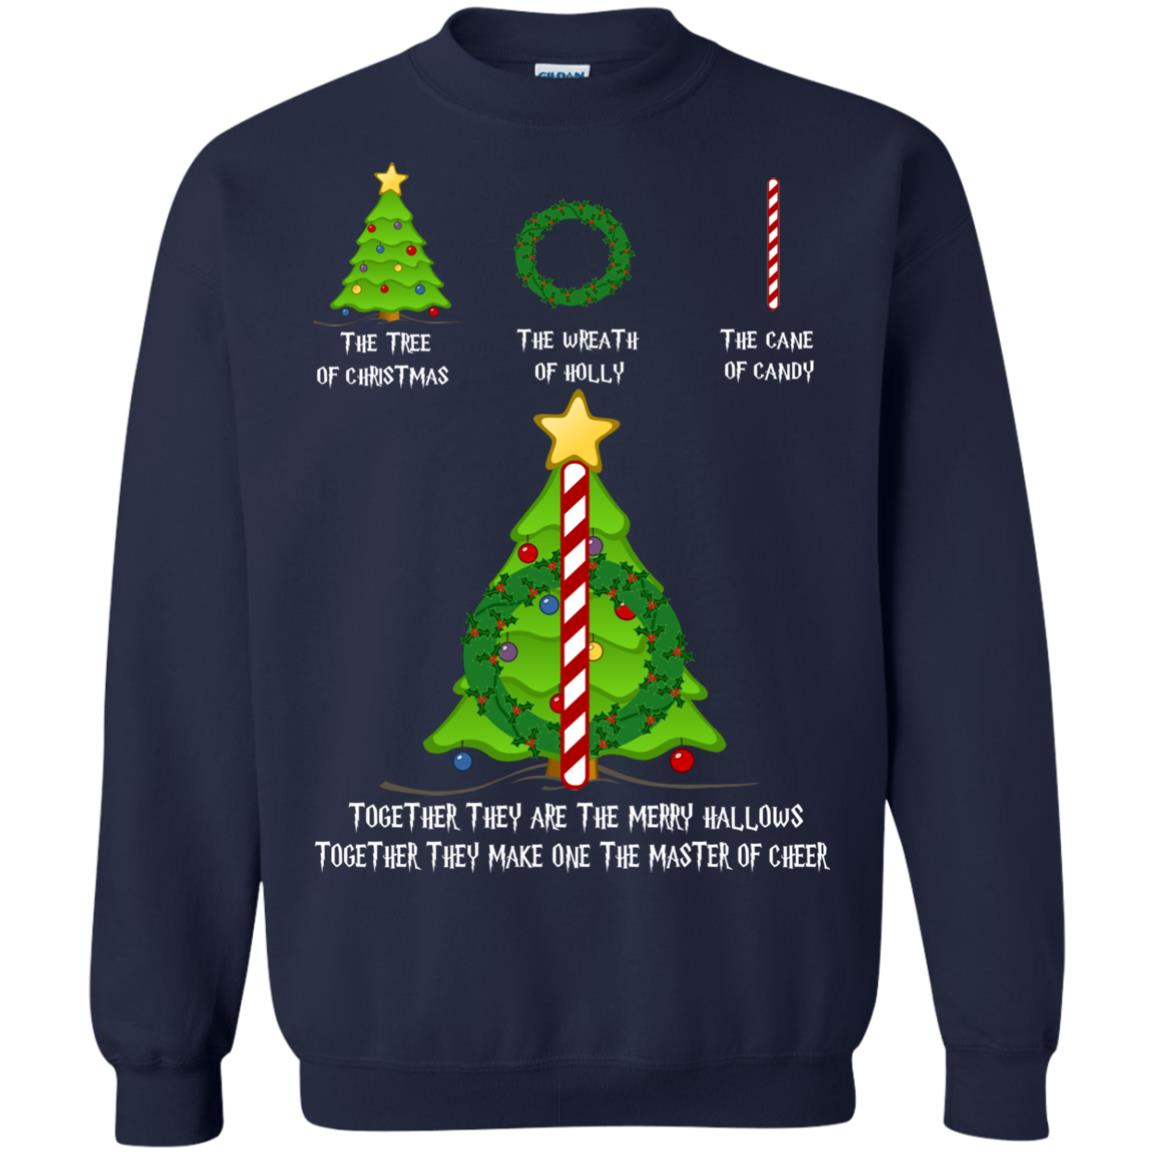 image 369px Harry Potter: The Tree Of Christmas The Wreath of Holly The Cane Of Candy Sweater